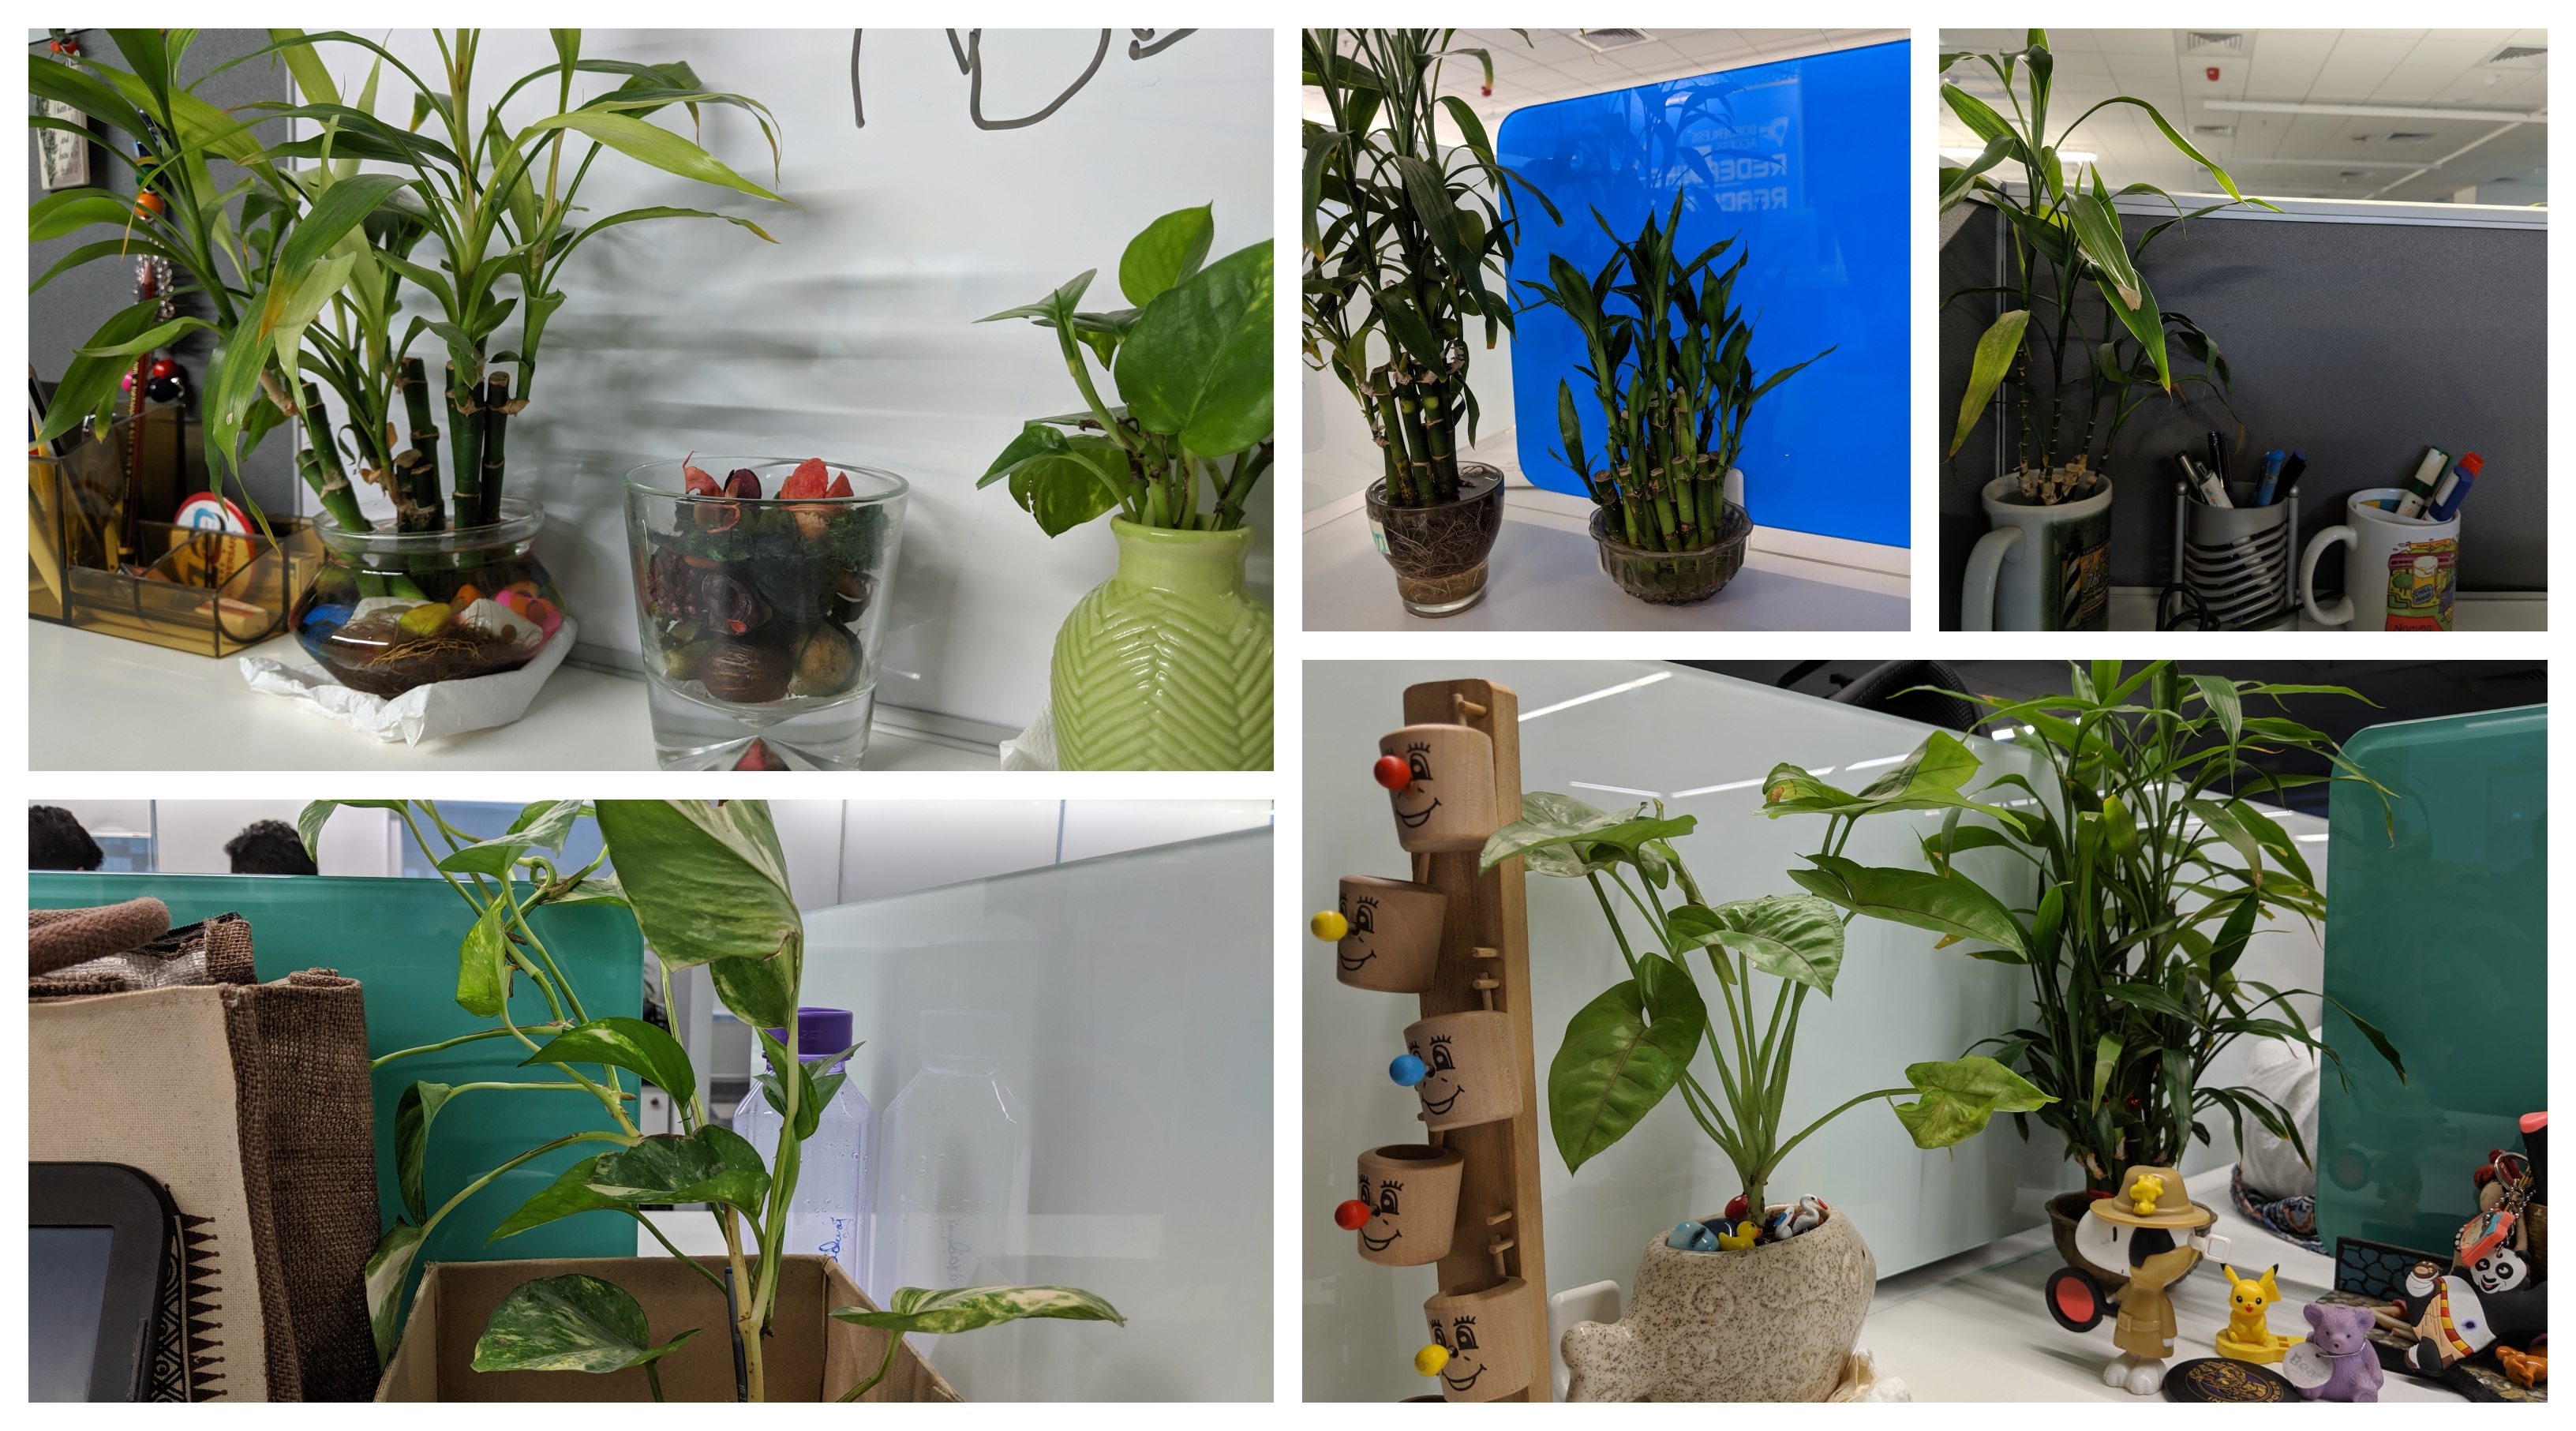 Workstation plants